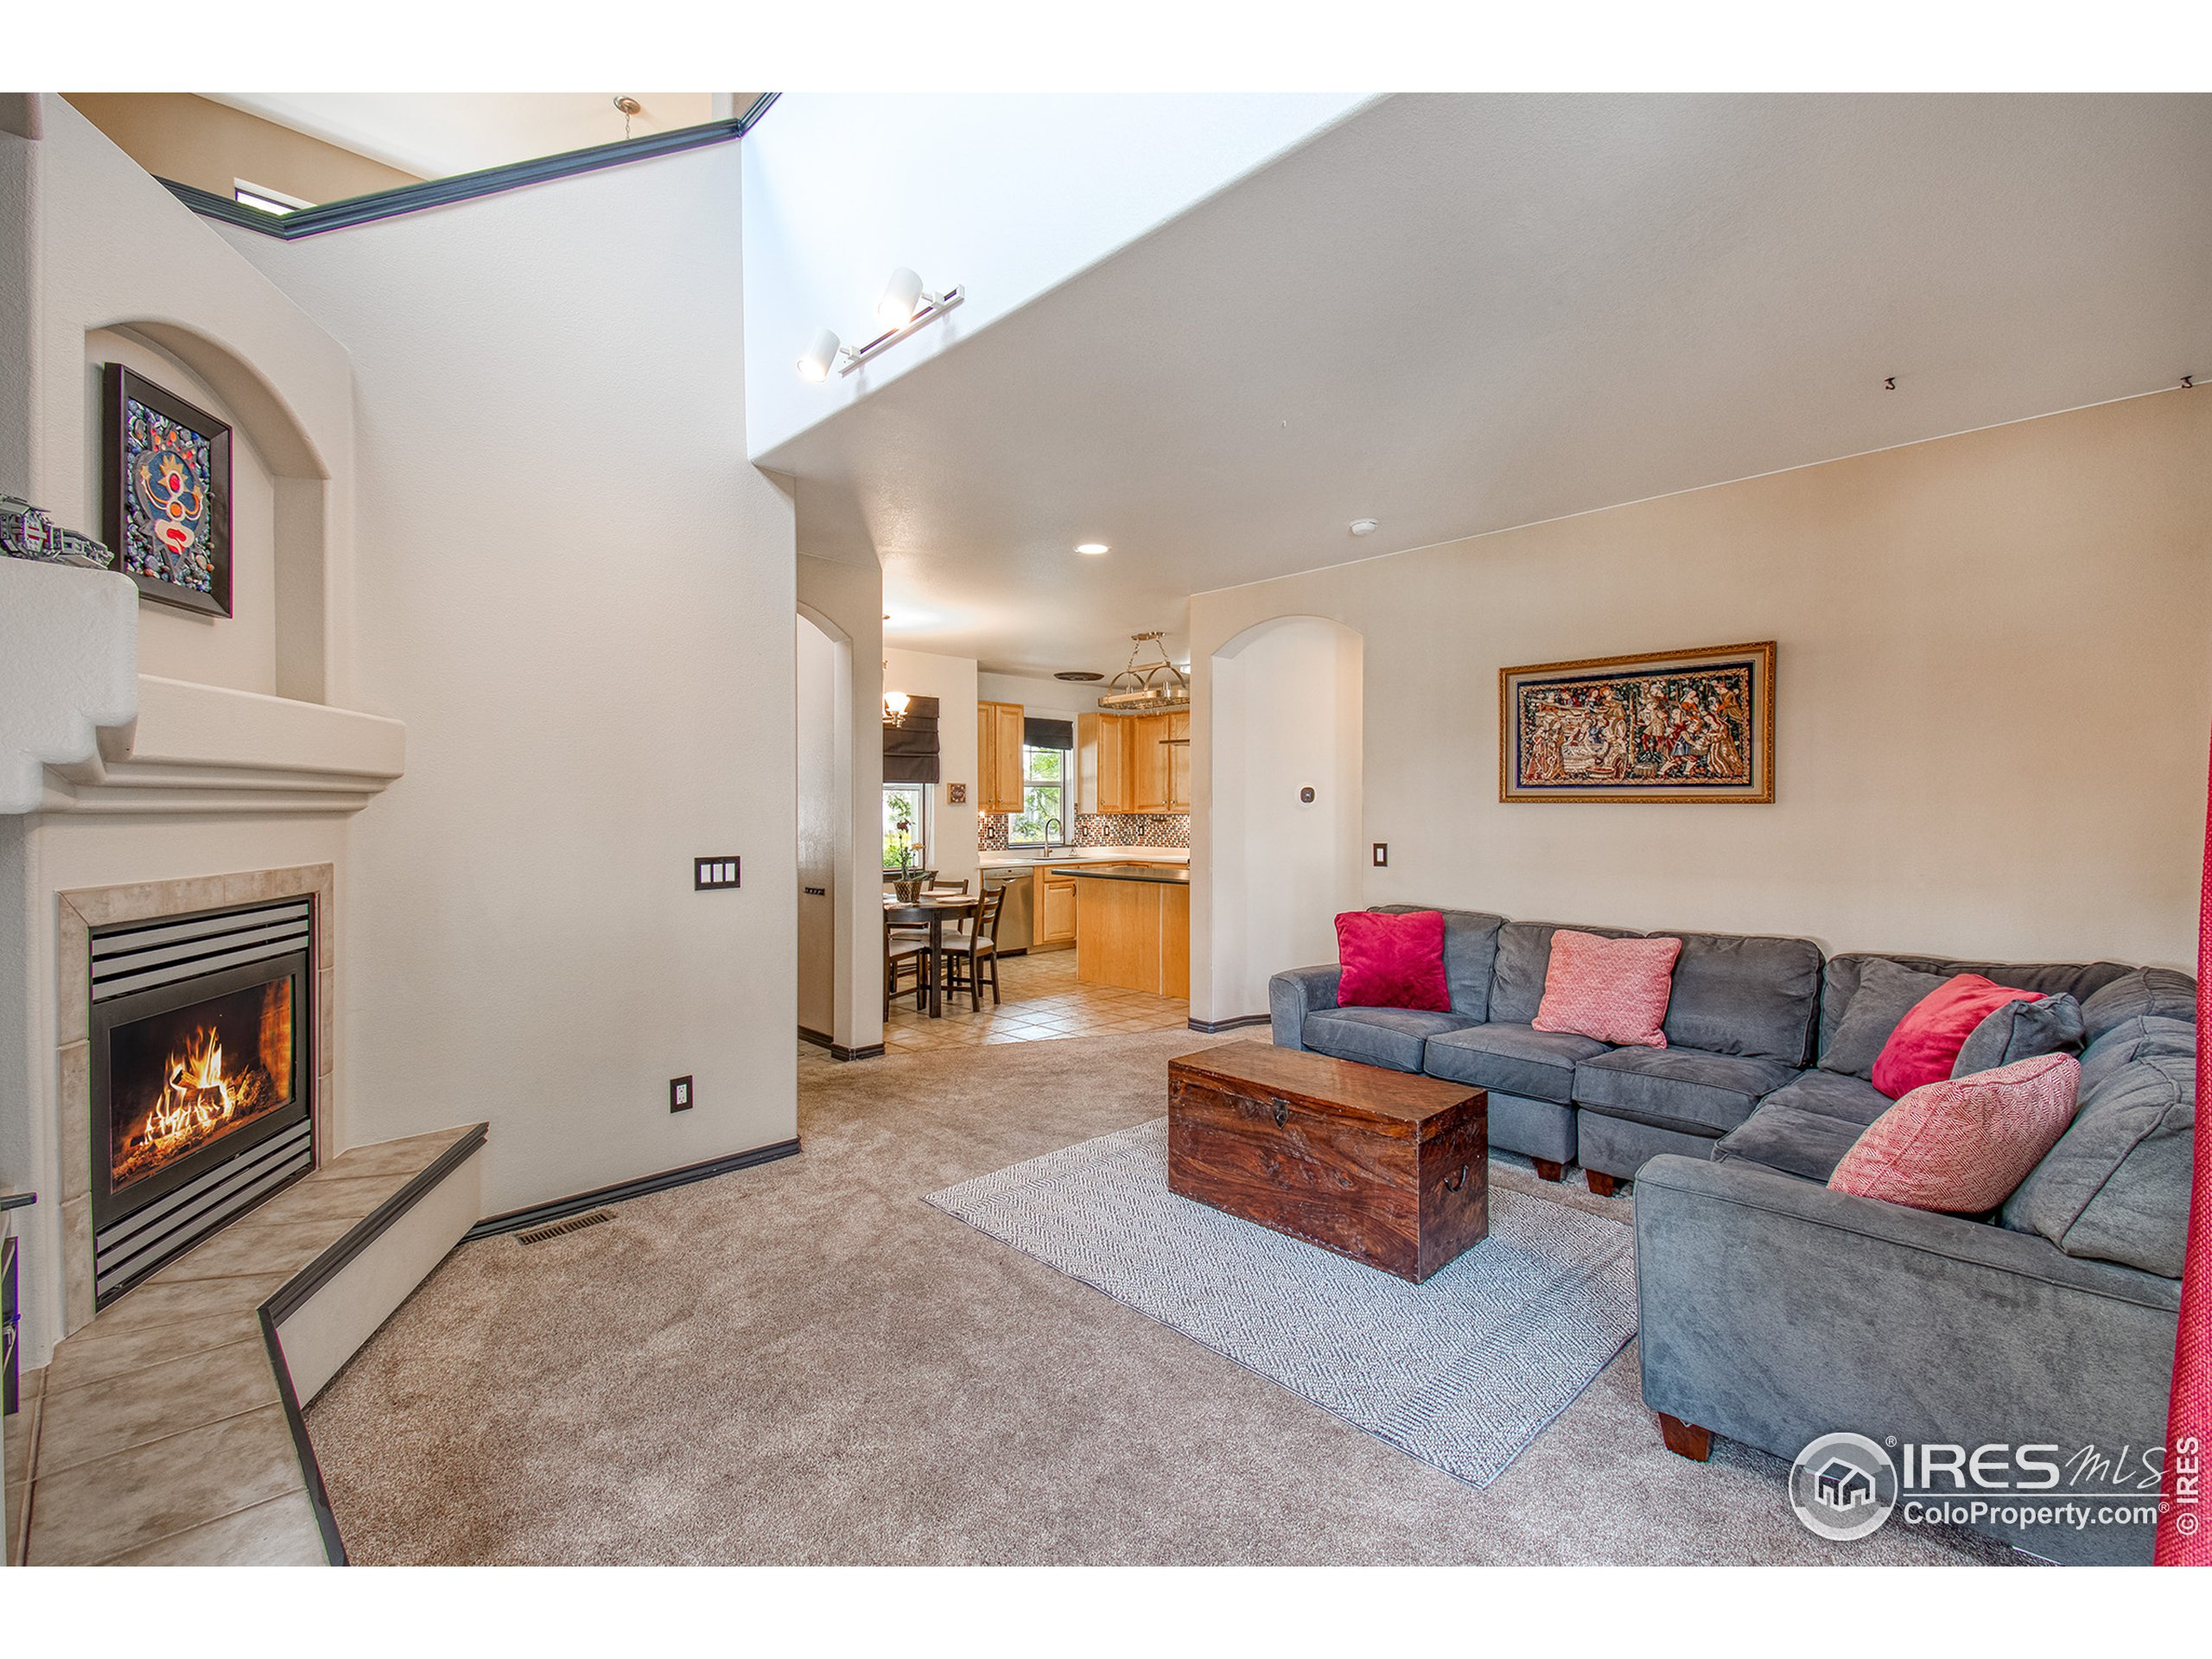 Living room features high ceilings and cozy fireplace